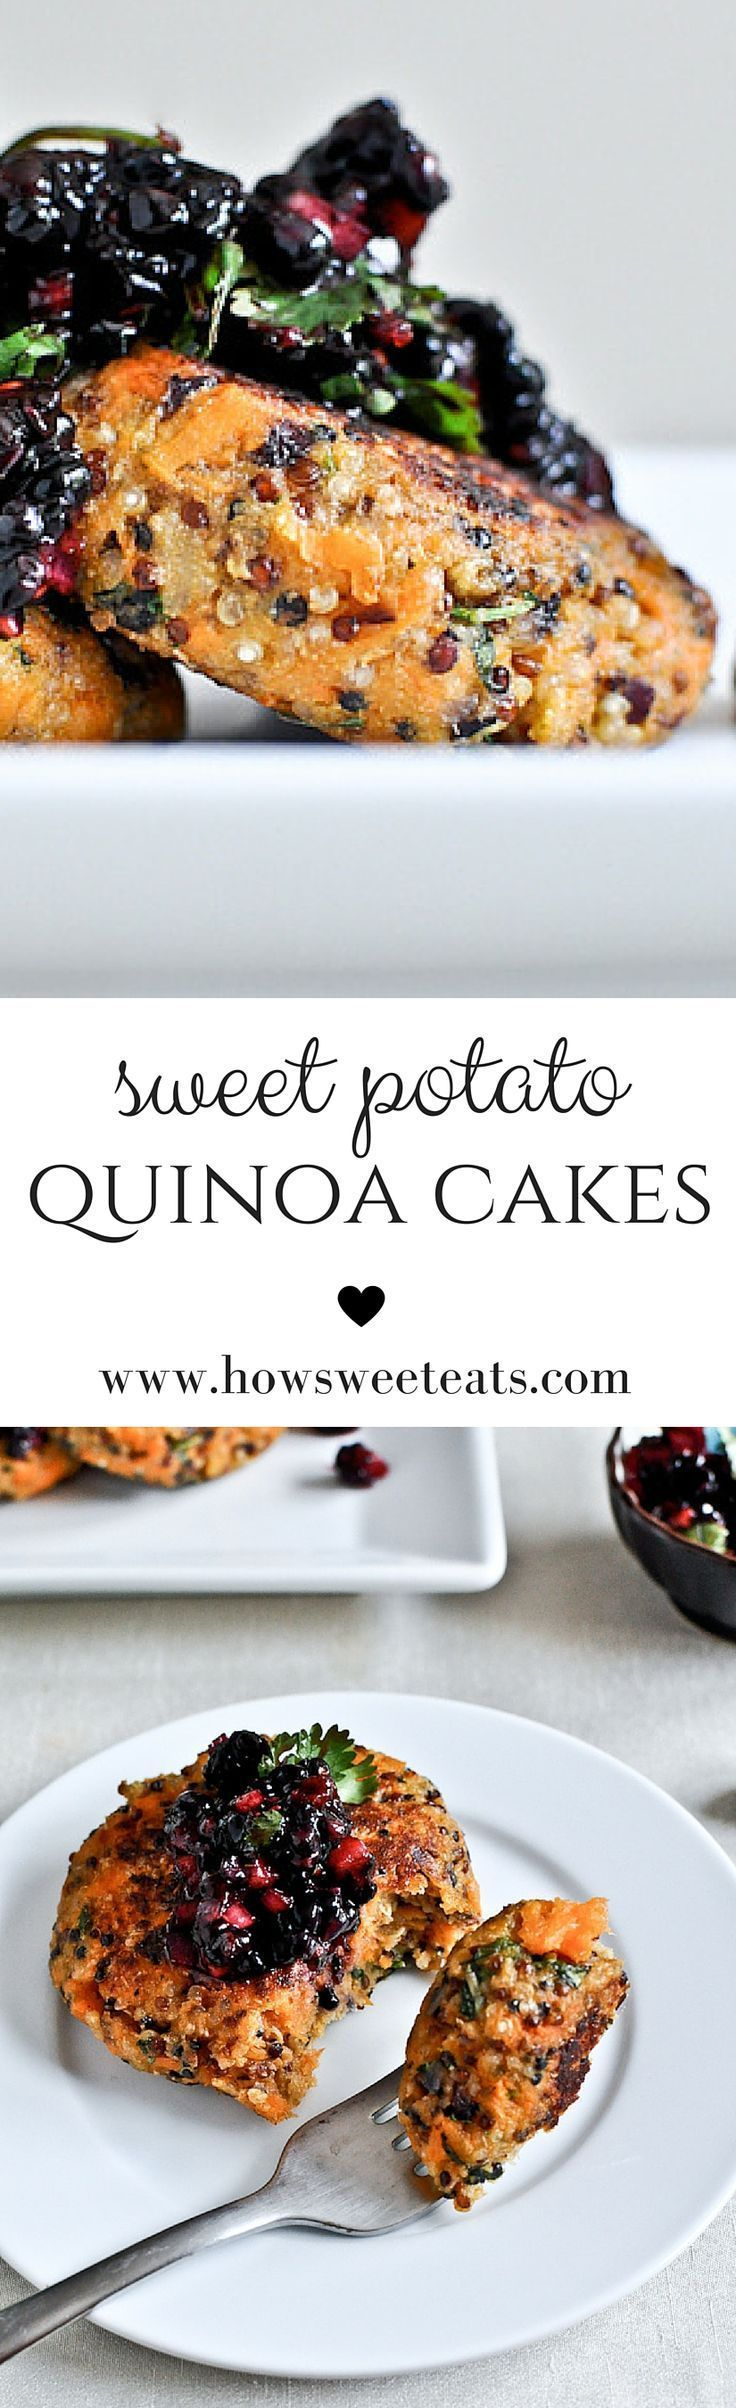 sweet potato quinoa cakes with blackberry salsa by /howsweeteats/ I http://howsweeteats.com (sweet potato snacks)